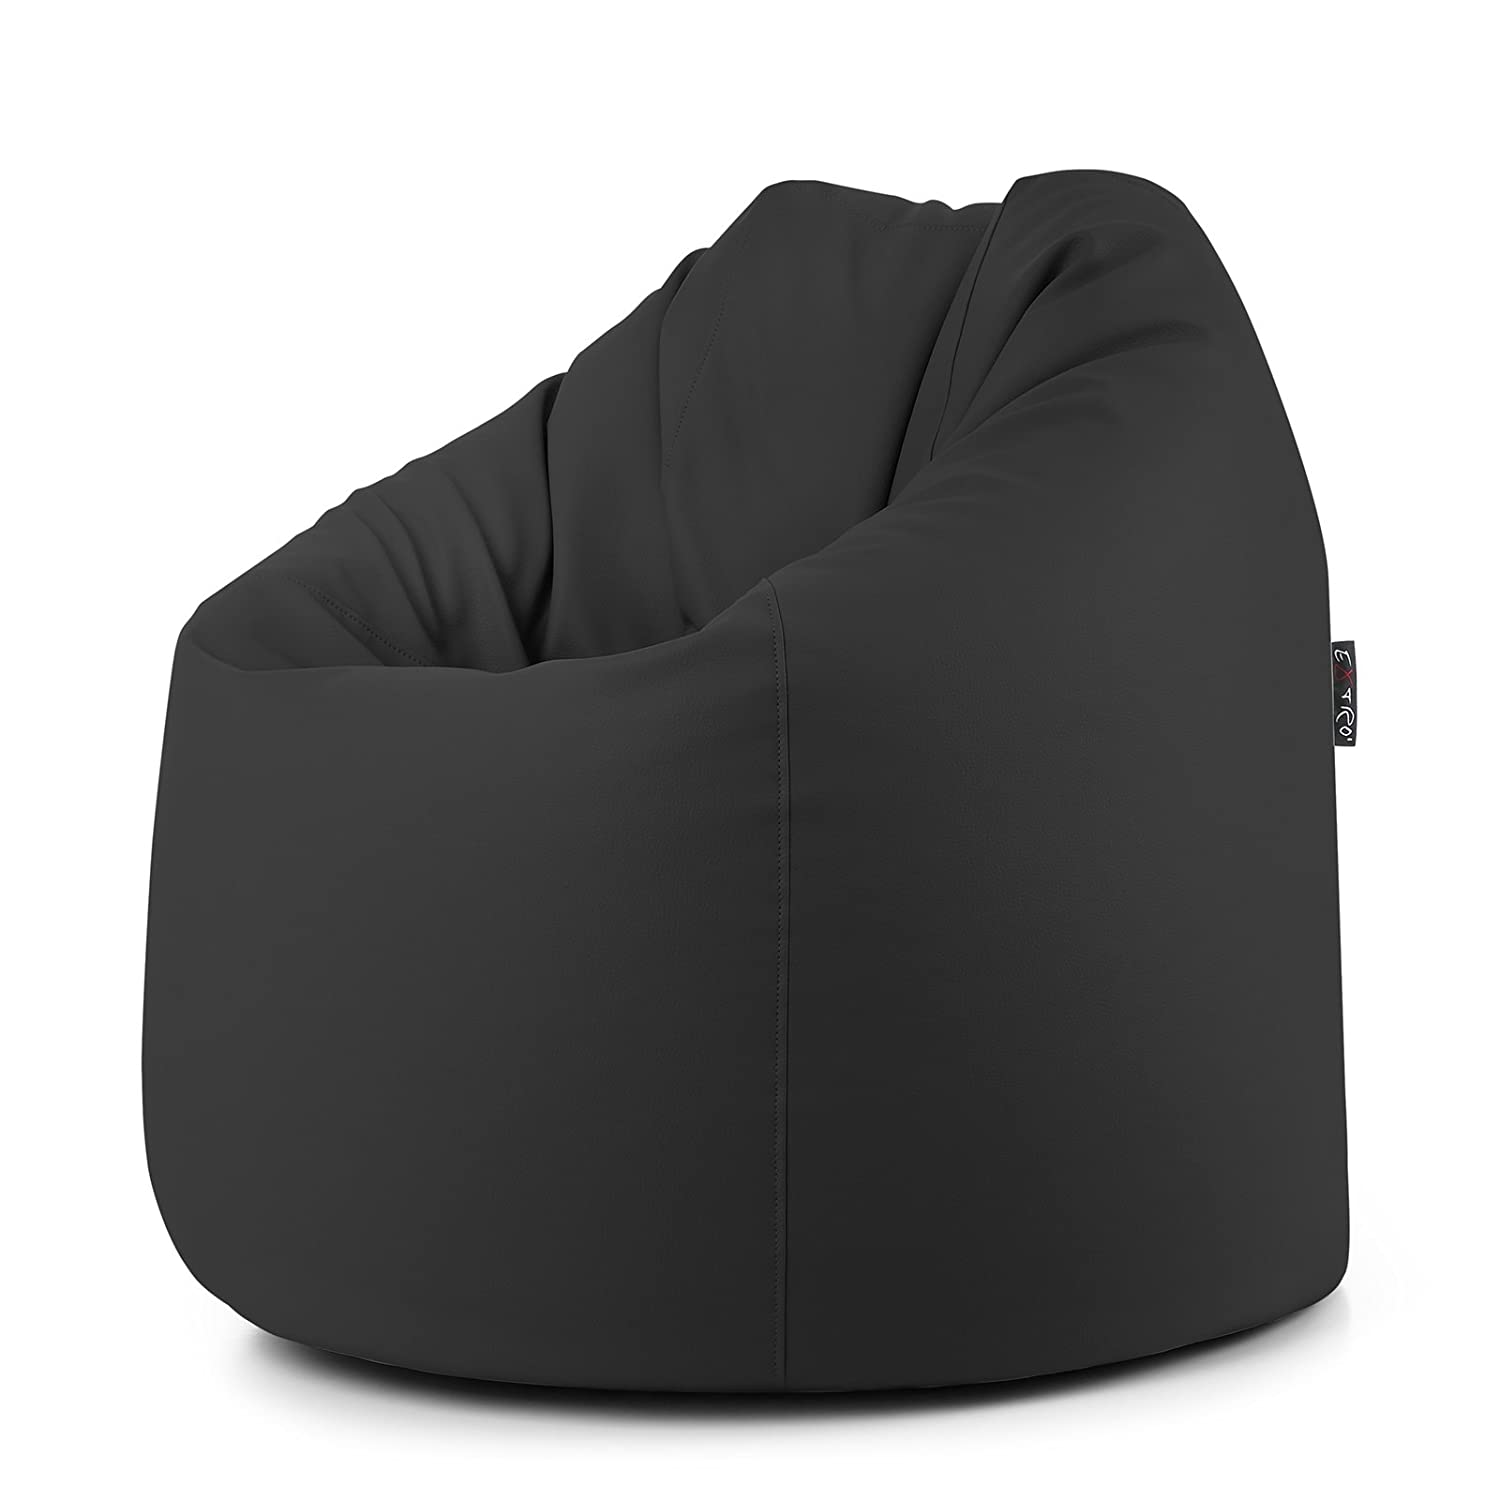 pouf ikea sacco dettagli prodotto with pouf ikea sacco sacco spridd ikea with pouf ikea sacco. Black Bedroom Furniture Sets. Home Design Ideas